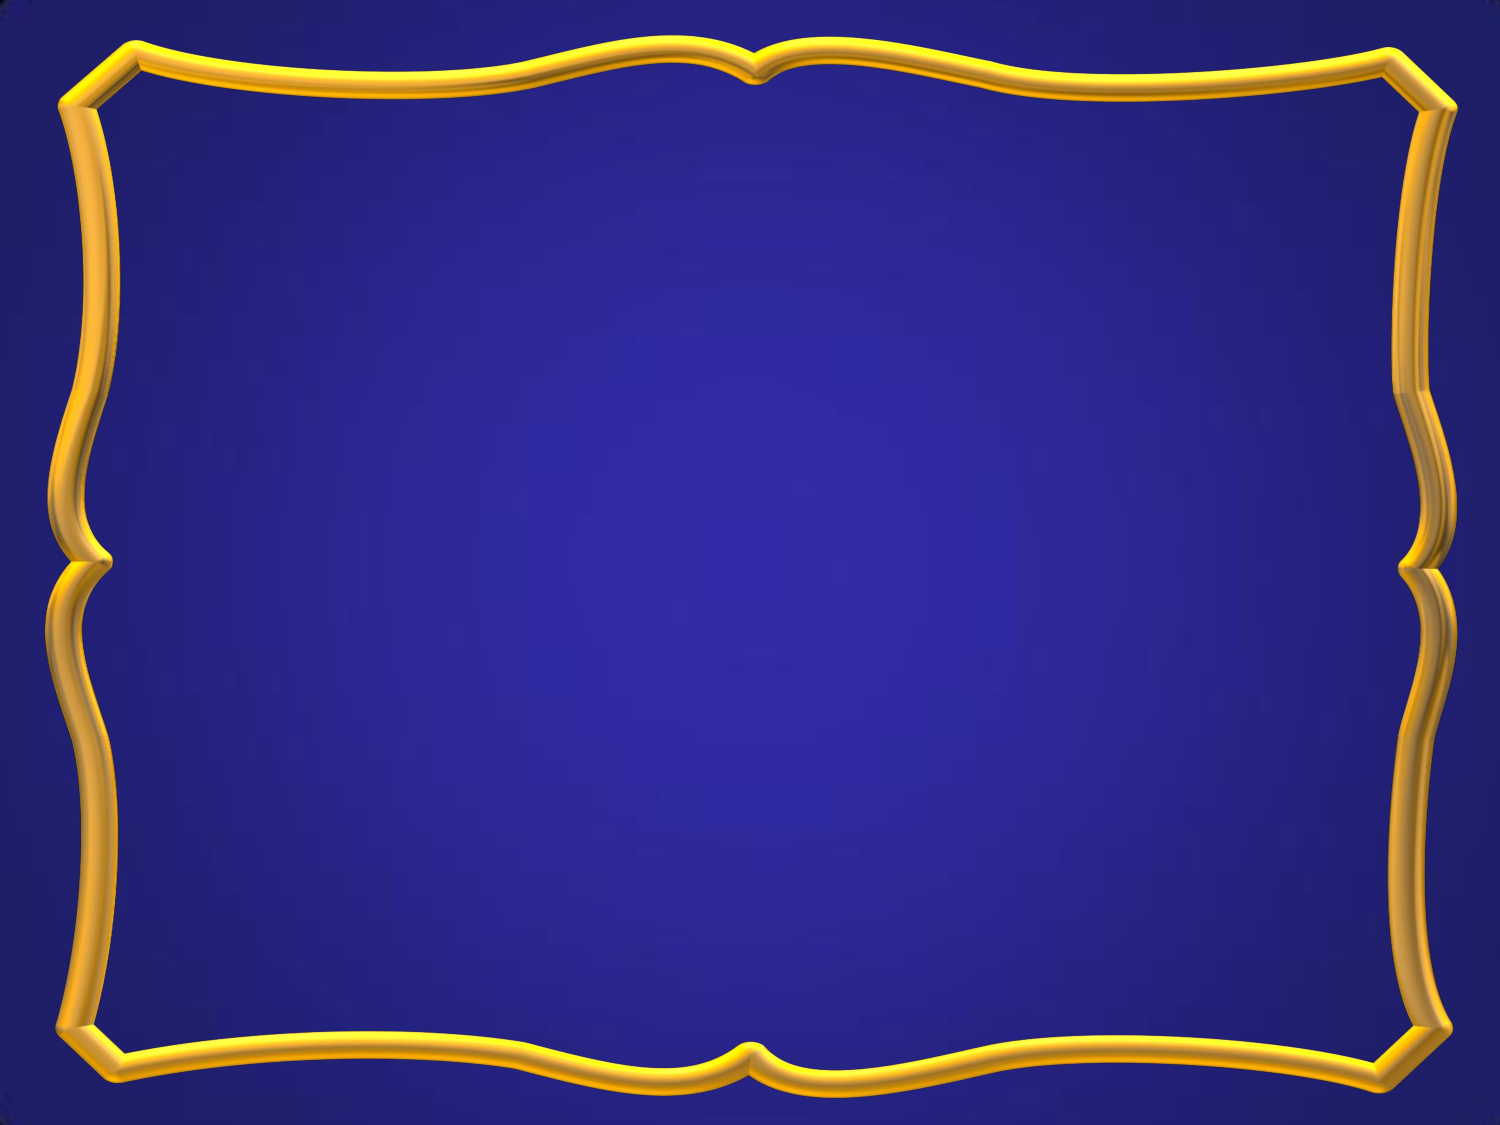 Royal Blue And Gold Png Free Royal Blue And Gold Png Transparent Images 56982 Pngio